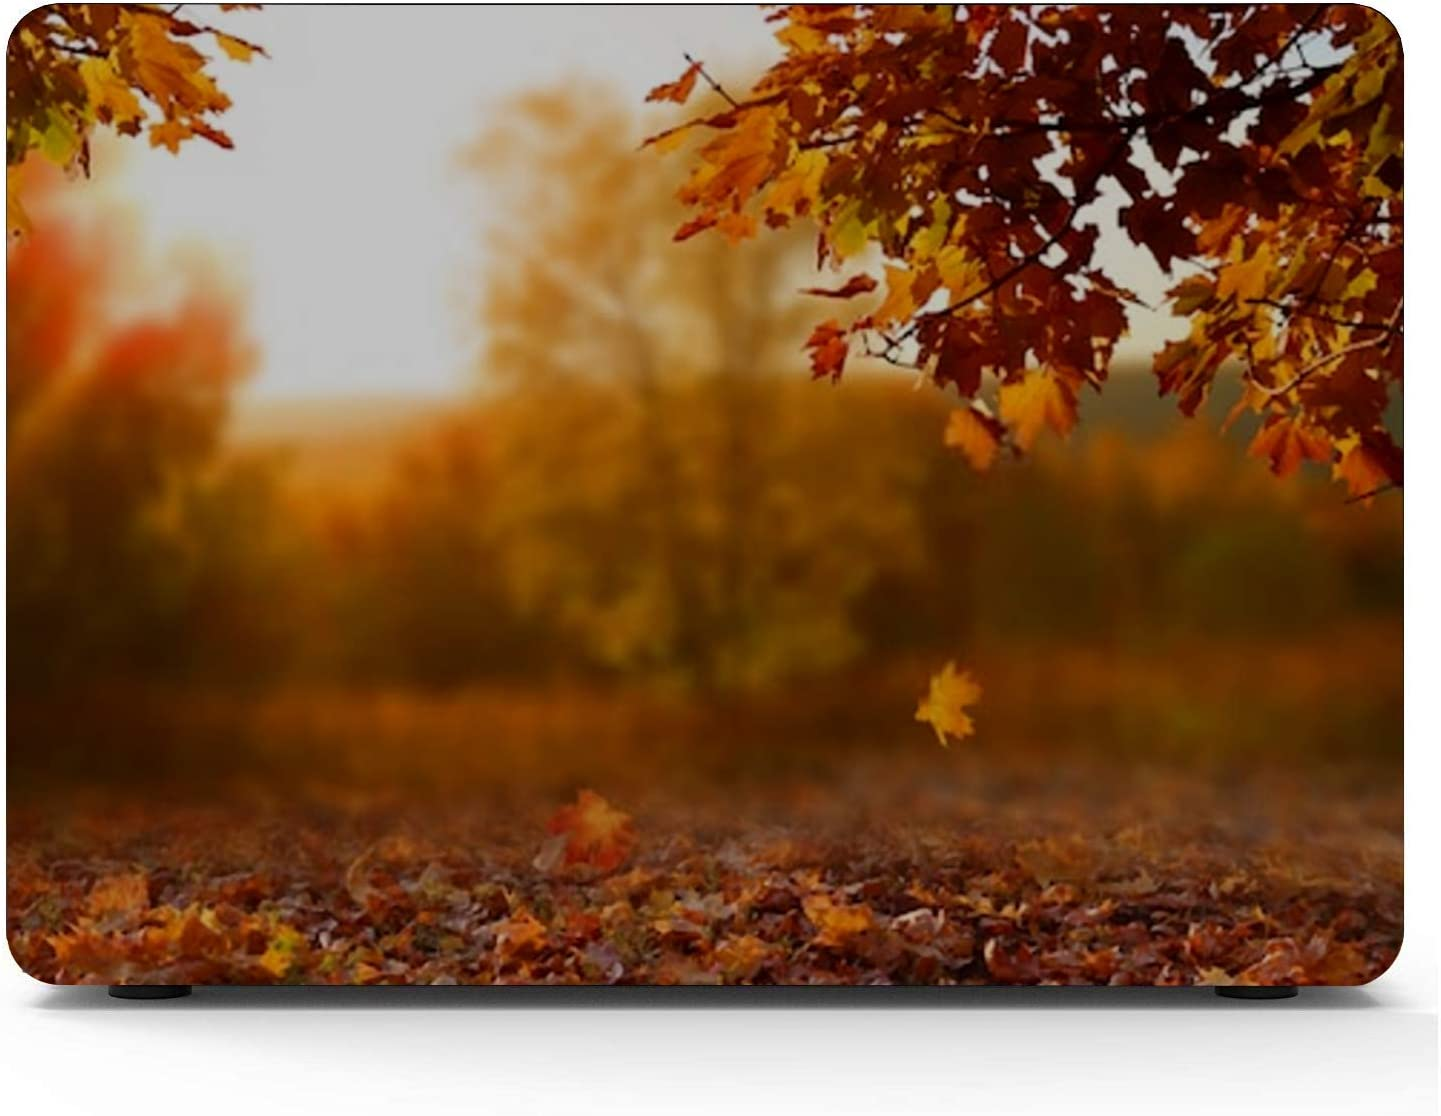 MacBook Pro Case Beautiful Autumn Landscape Yellow Trees Sun MacBook Retina 12 A1534 Plastic Case Keyboard Cover /& Screen Protector /& Keyboard Clean